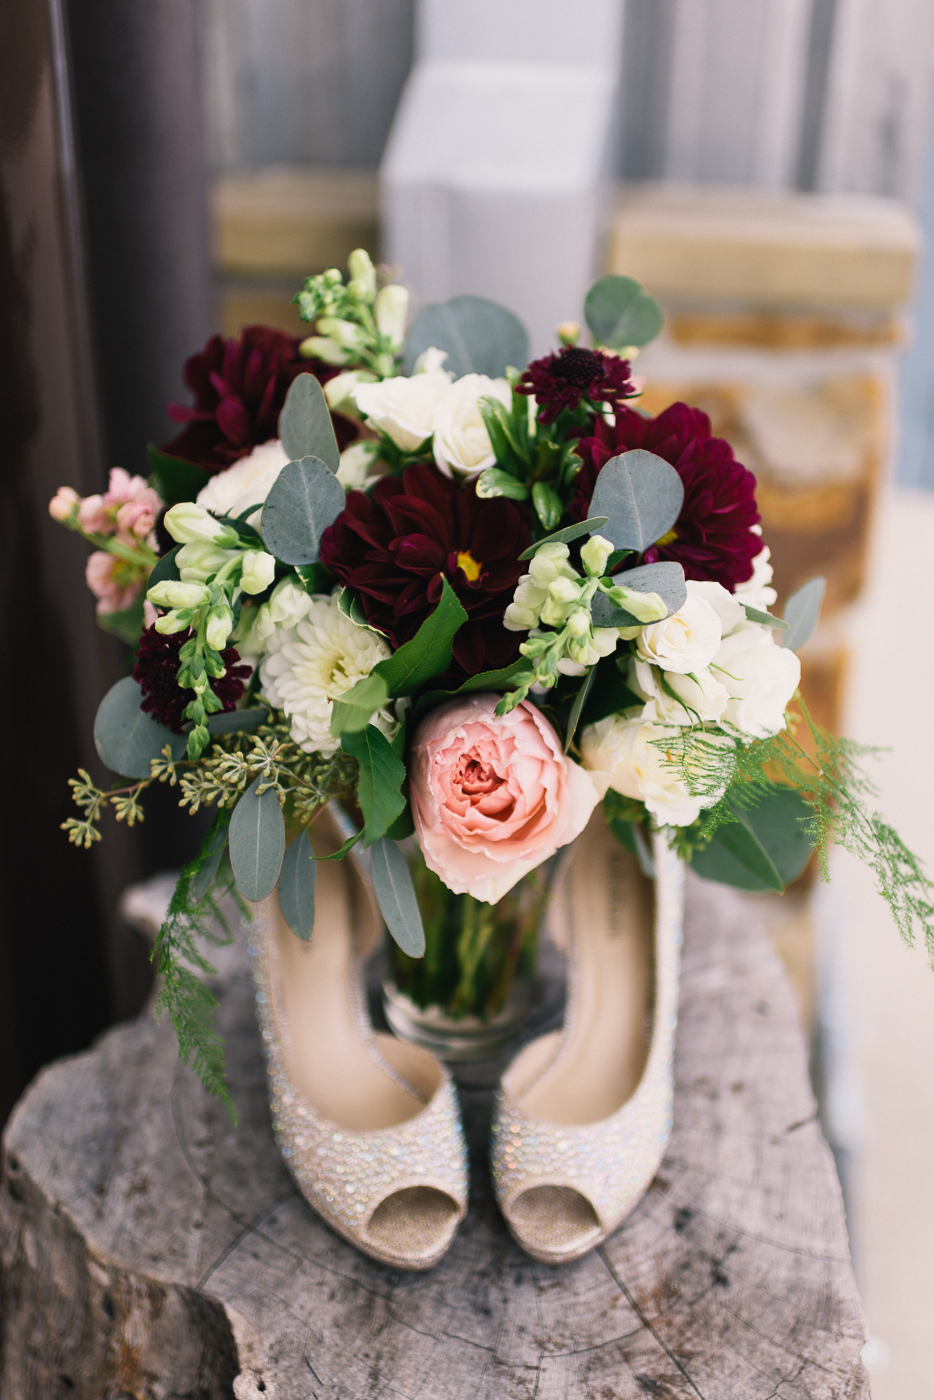 Wedding shoes flowers bokeh pink white red green vase peep toe wedding shoes bouquet